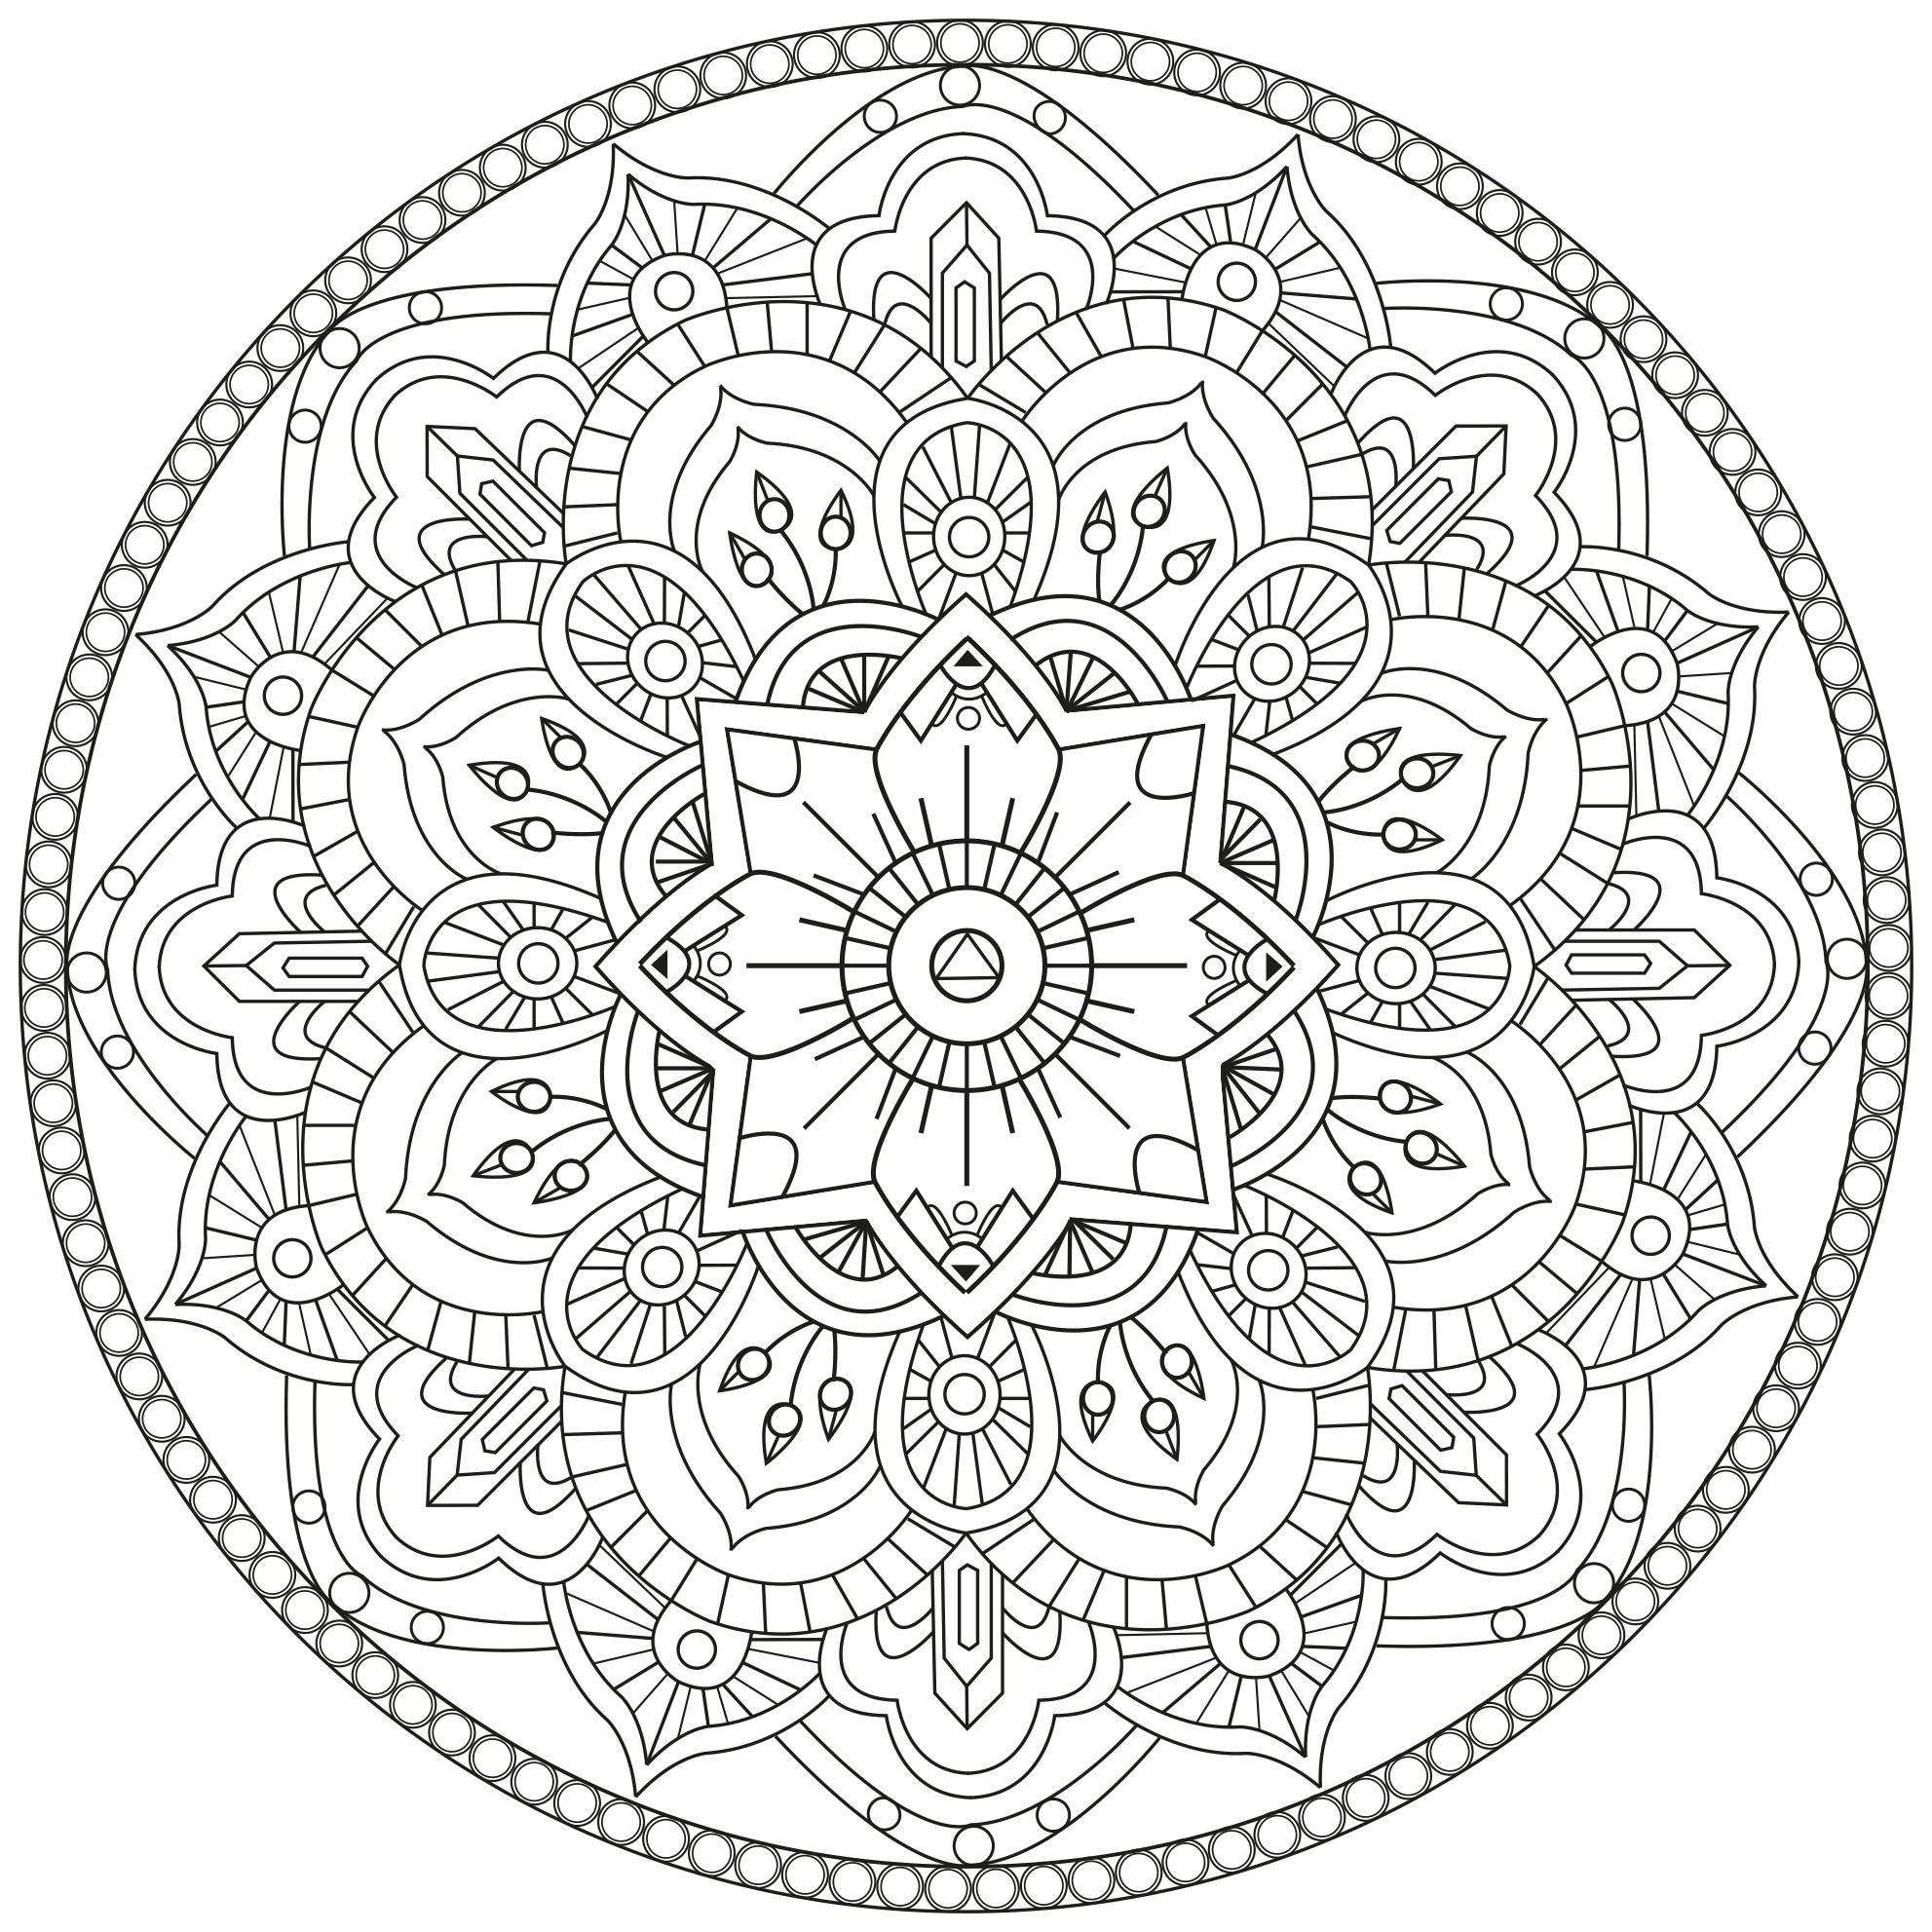 image=flowers ve ation coloriage mandala gratuit fleurs traits reguliers 1